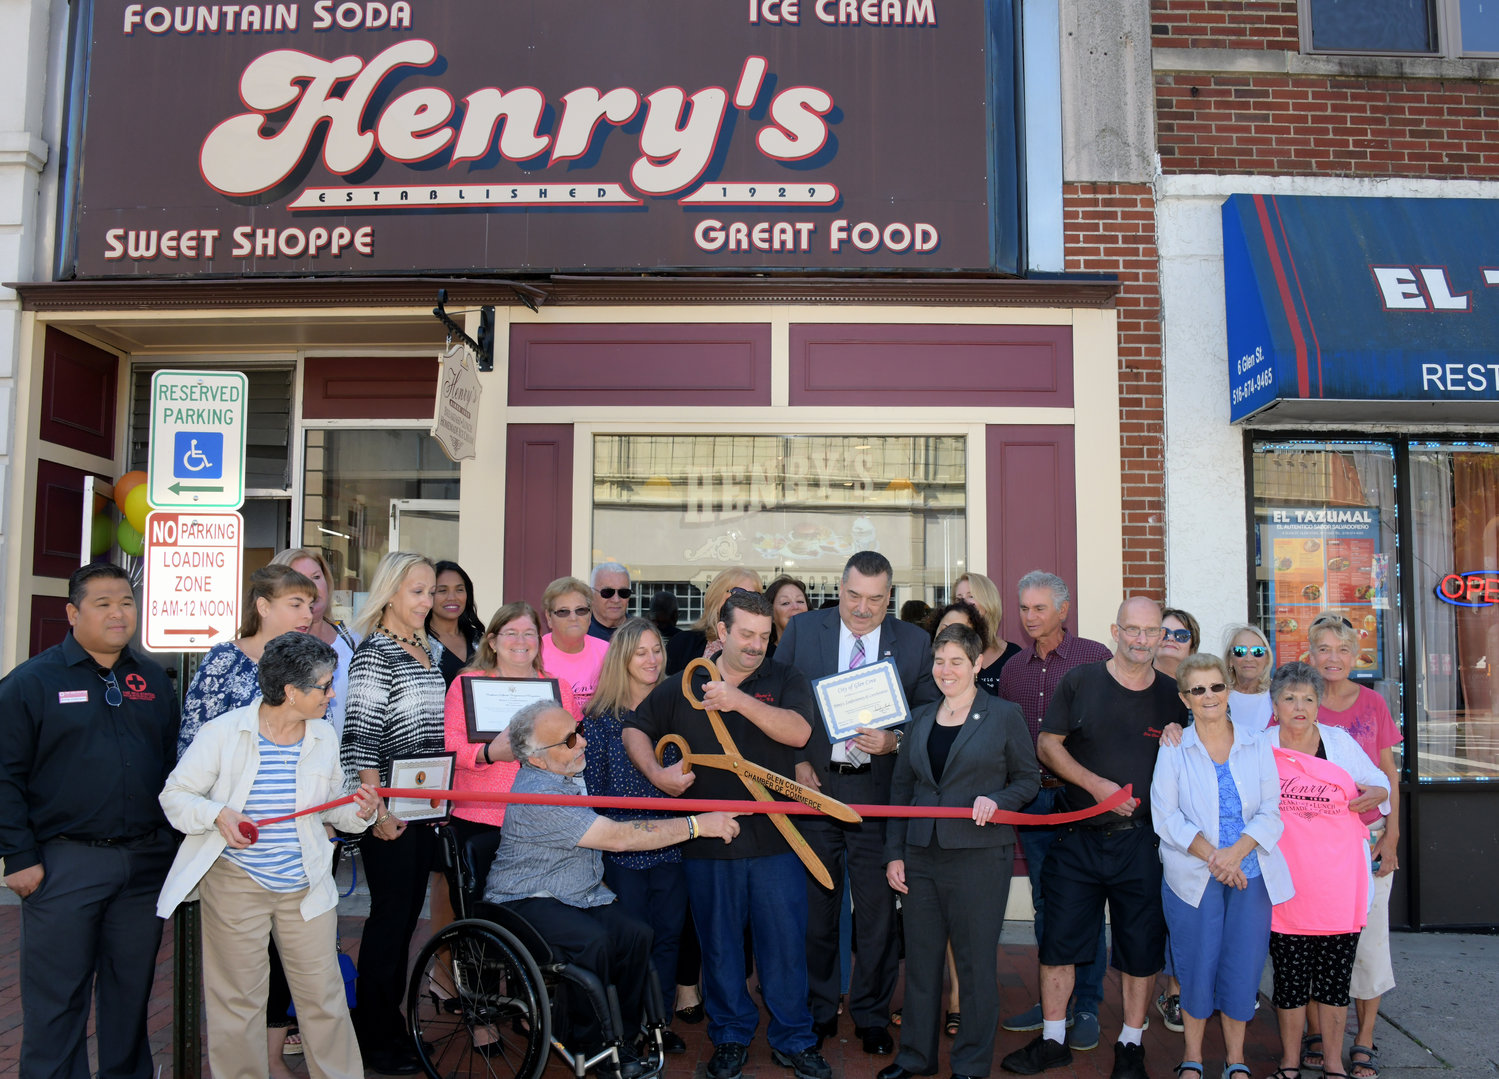 Henry's Confectionary owner Joseph Valensisi cut the ribbon to celebrate the store's 90th anniversary on Sept. 25.